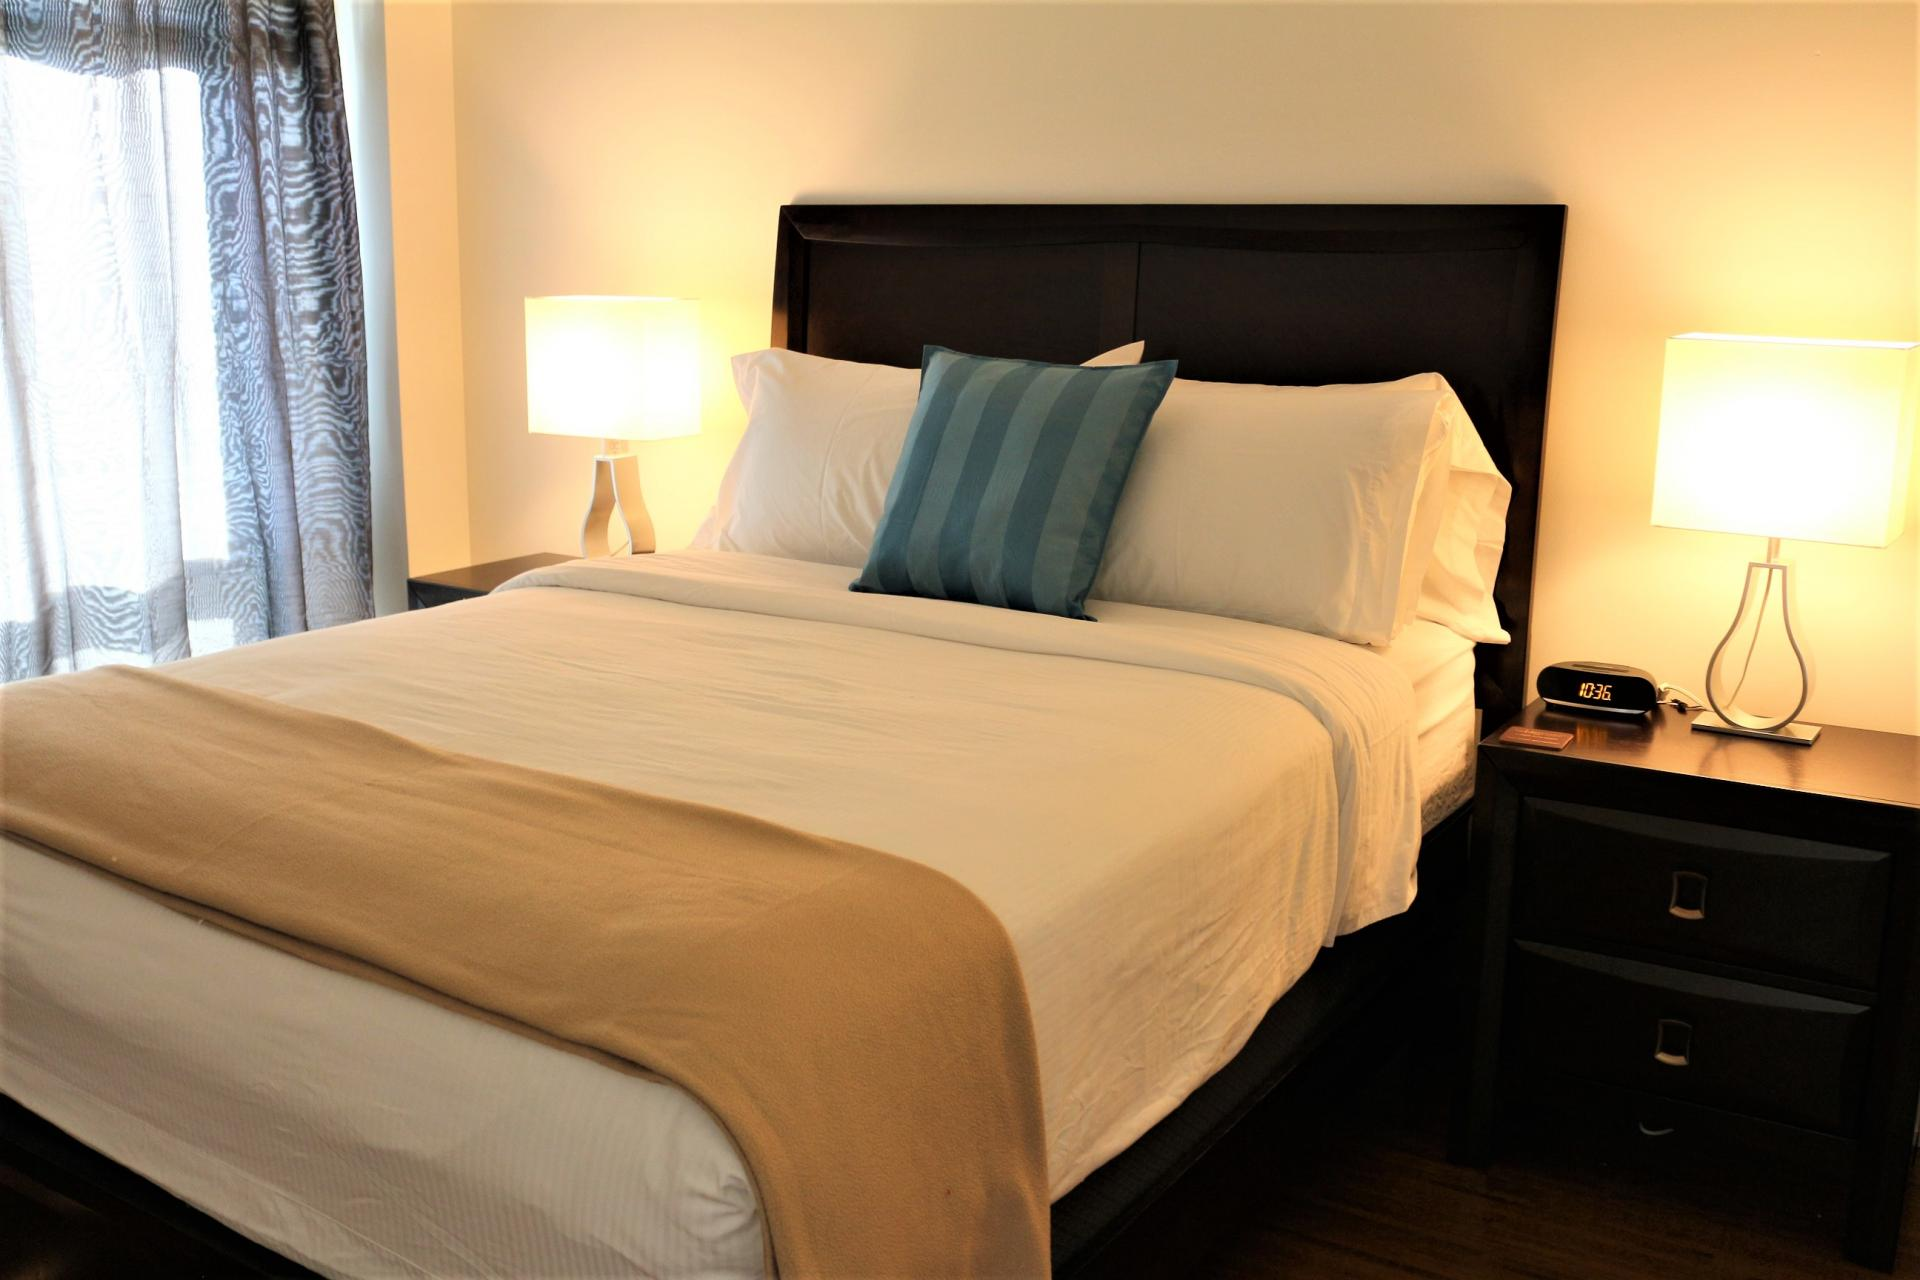 Bedding at The Mosaique Apartments, Centre, Montreal